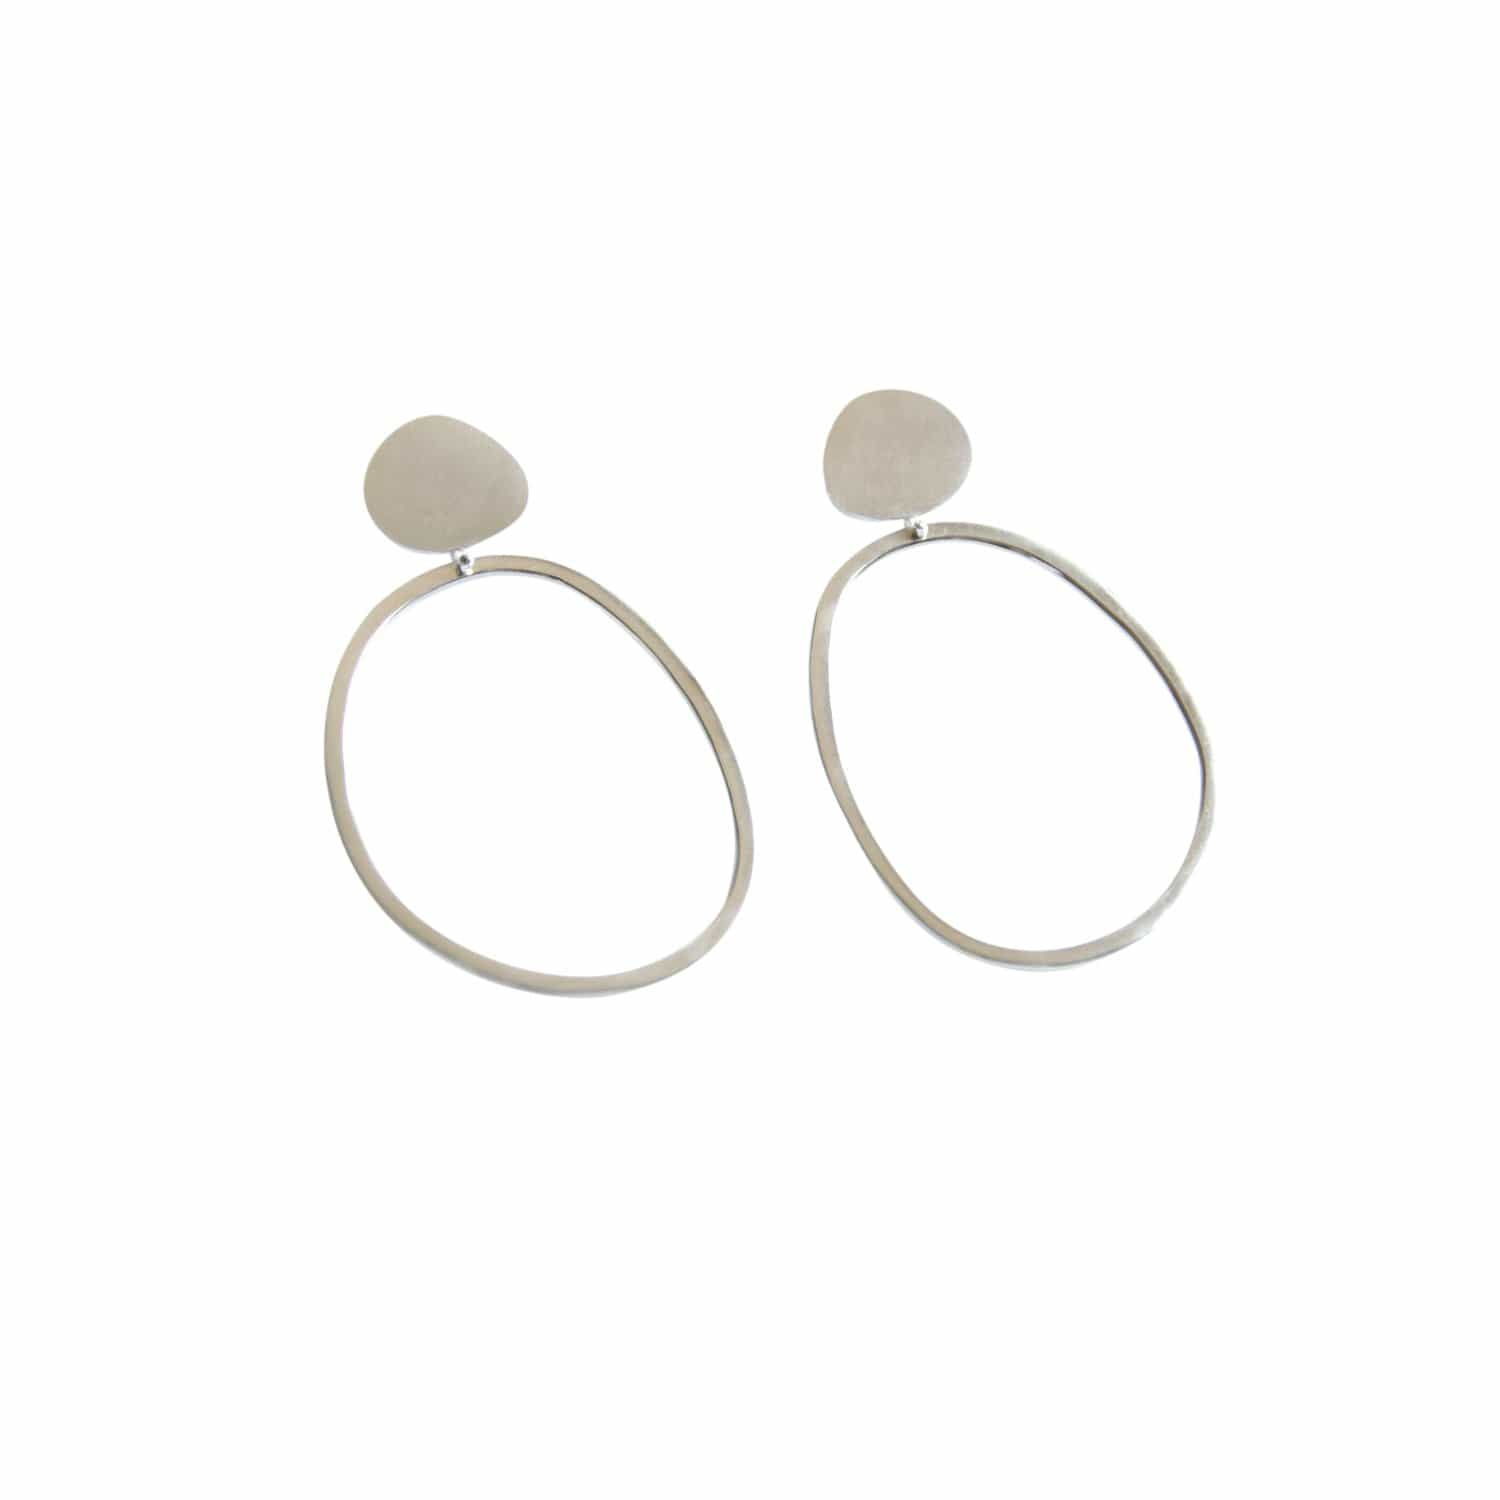 tothemetal Earrings Pebble + Abstract Silver Hoop Earrings